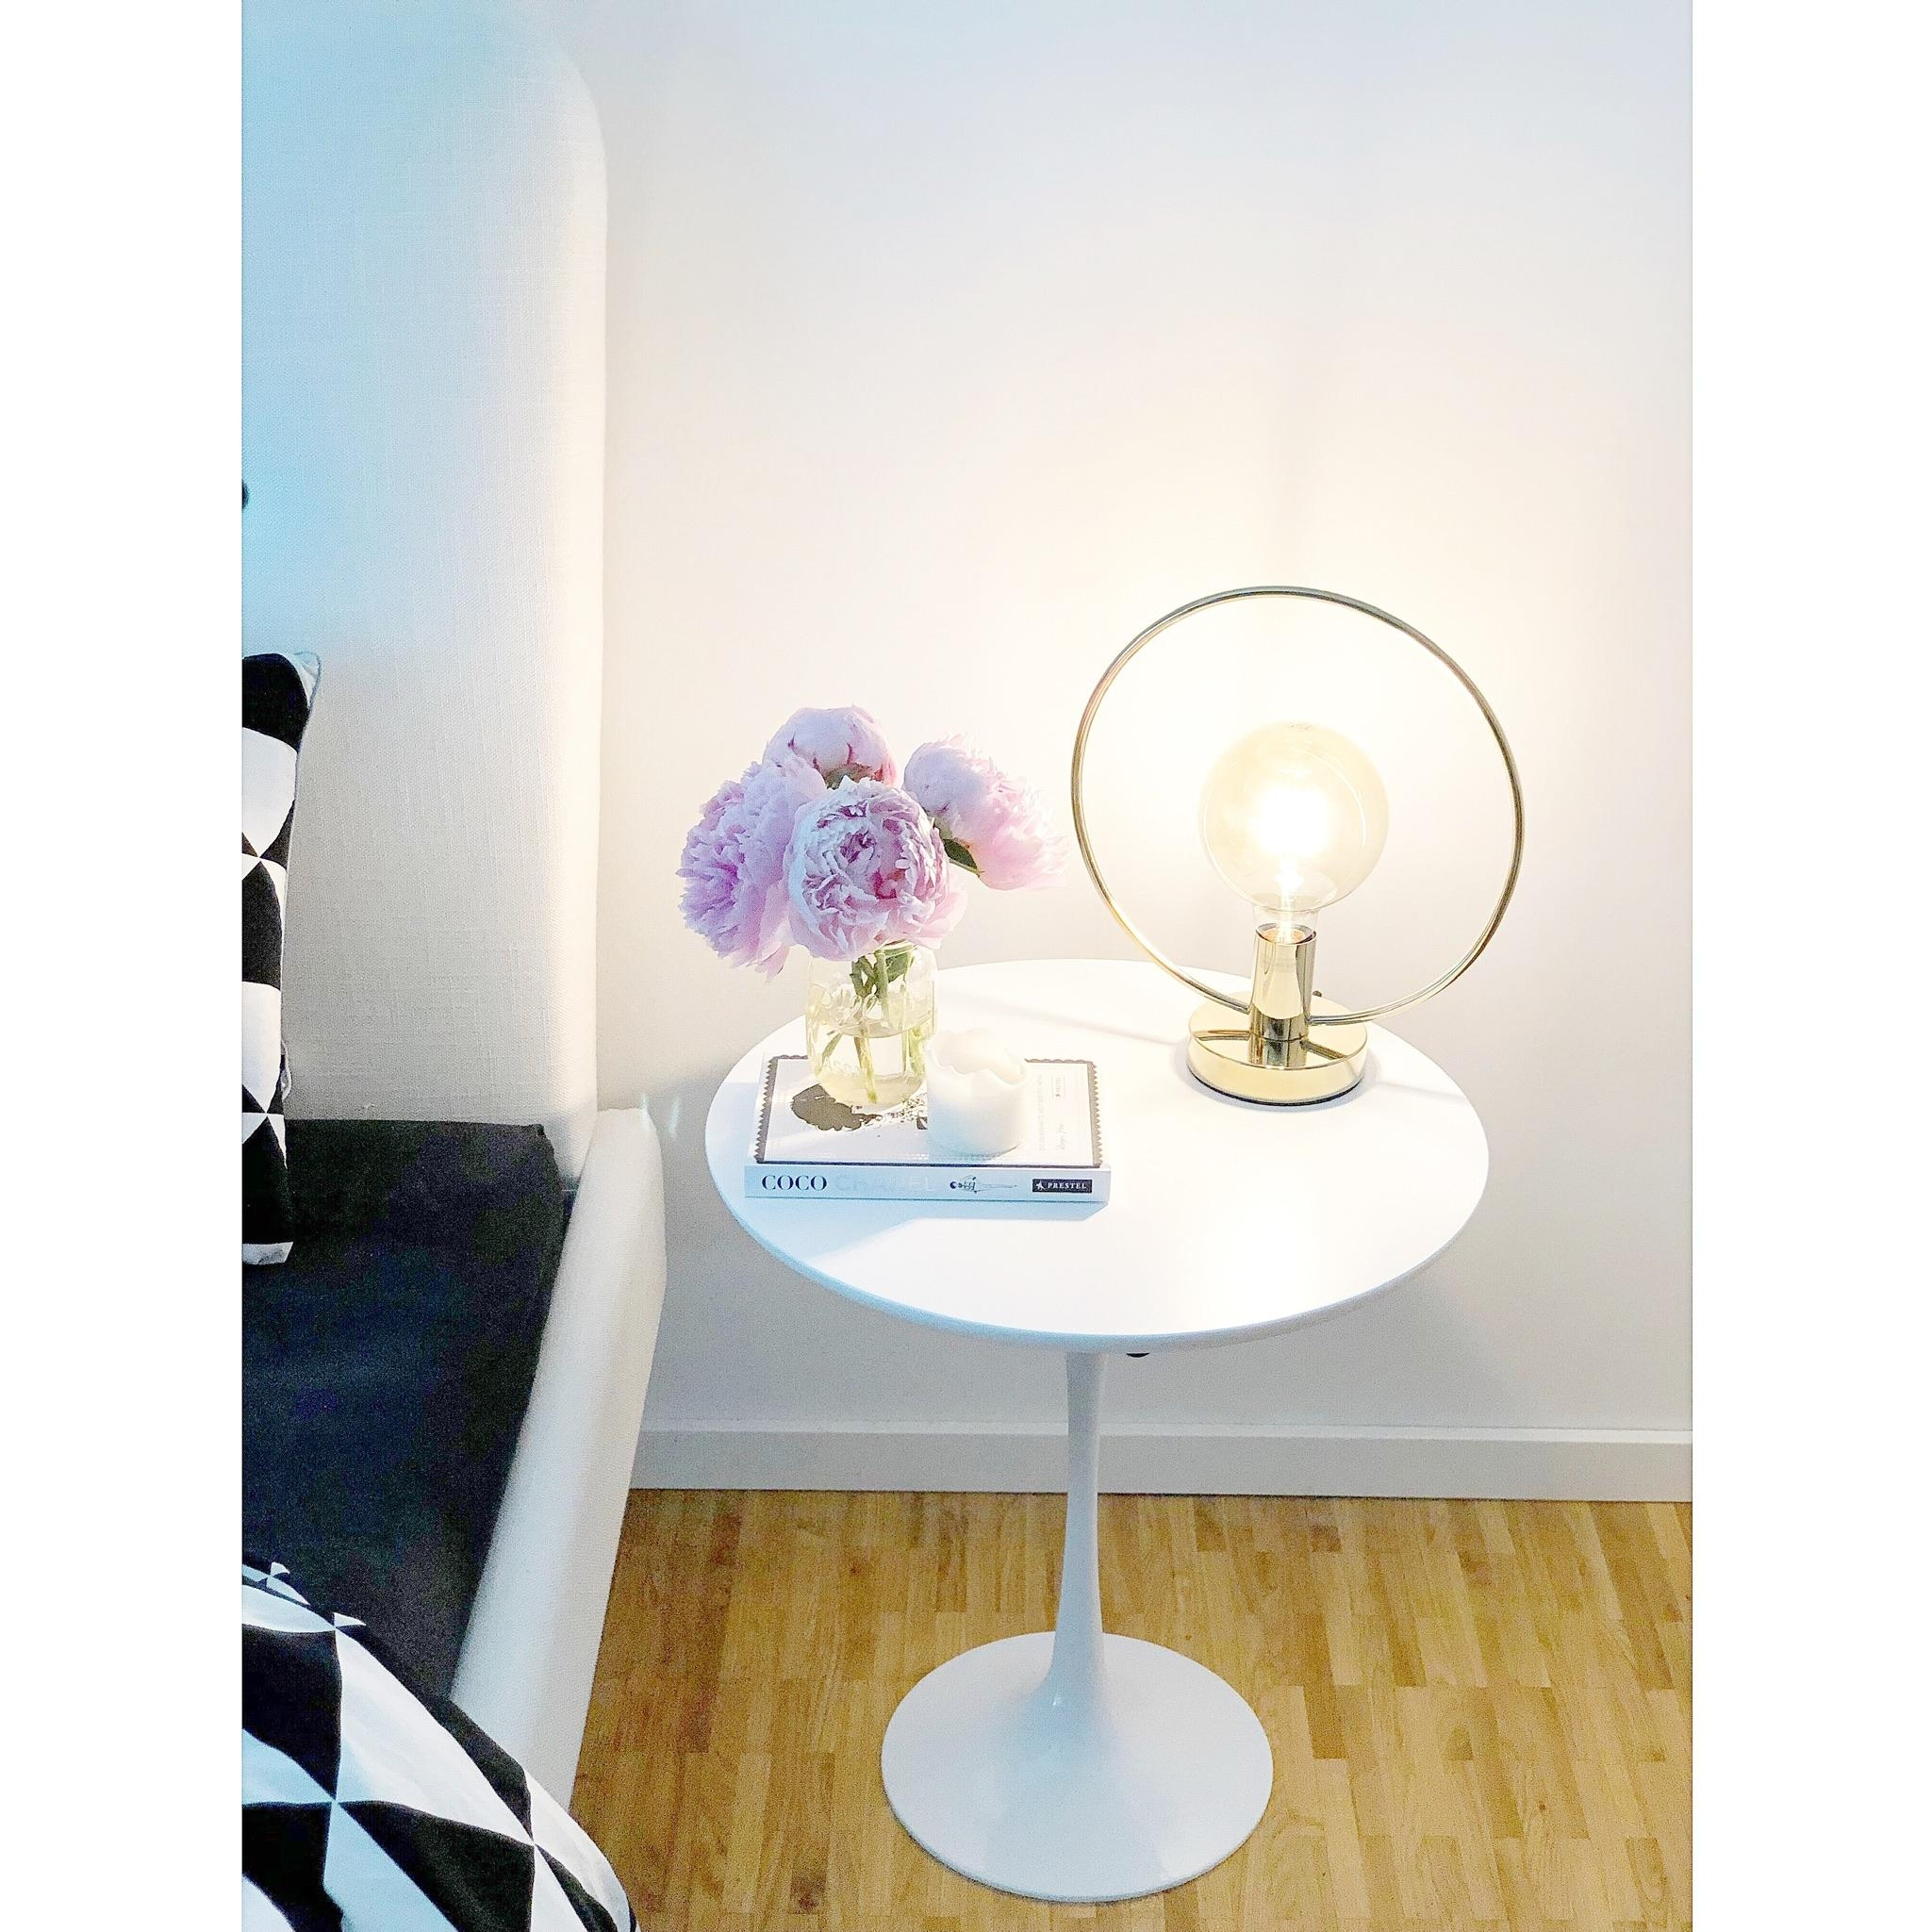 Myhome schlafzimmer tuliptable saarinen  7f49d9ce c680 467e 8c59 0cd627f9b0bd